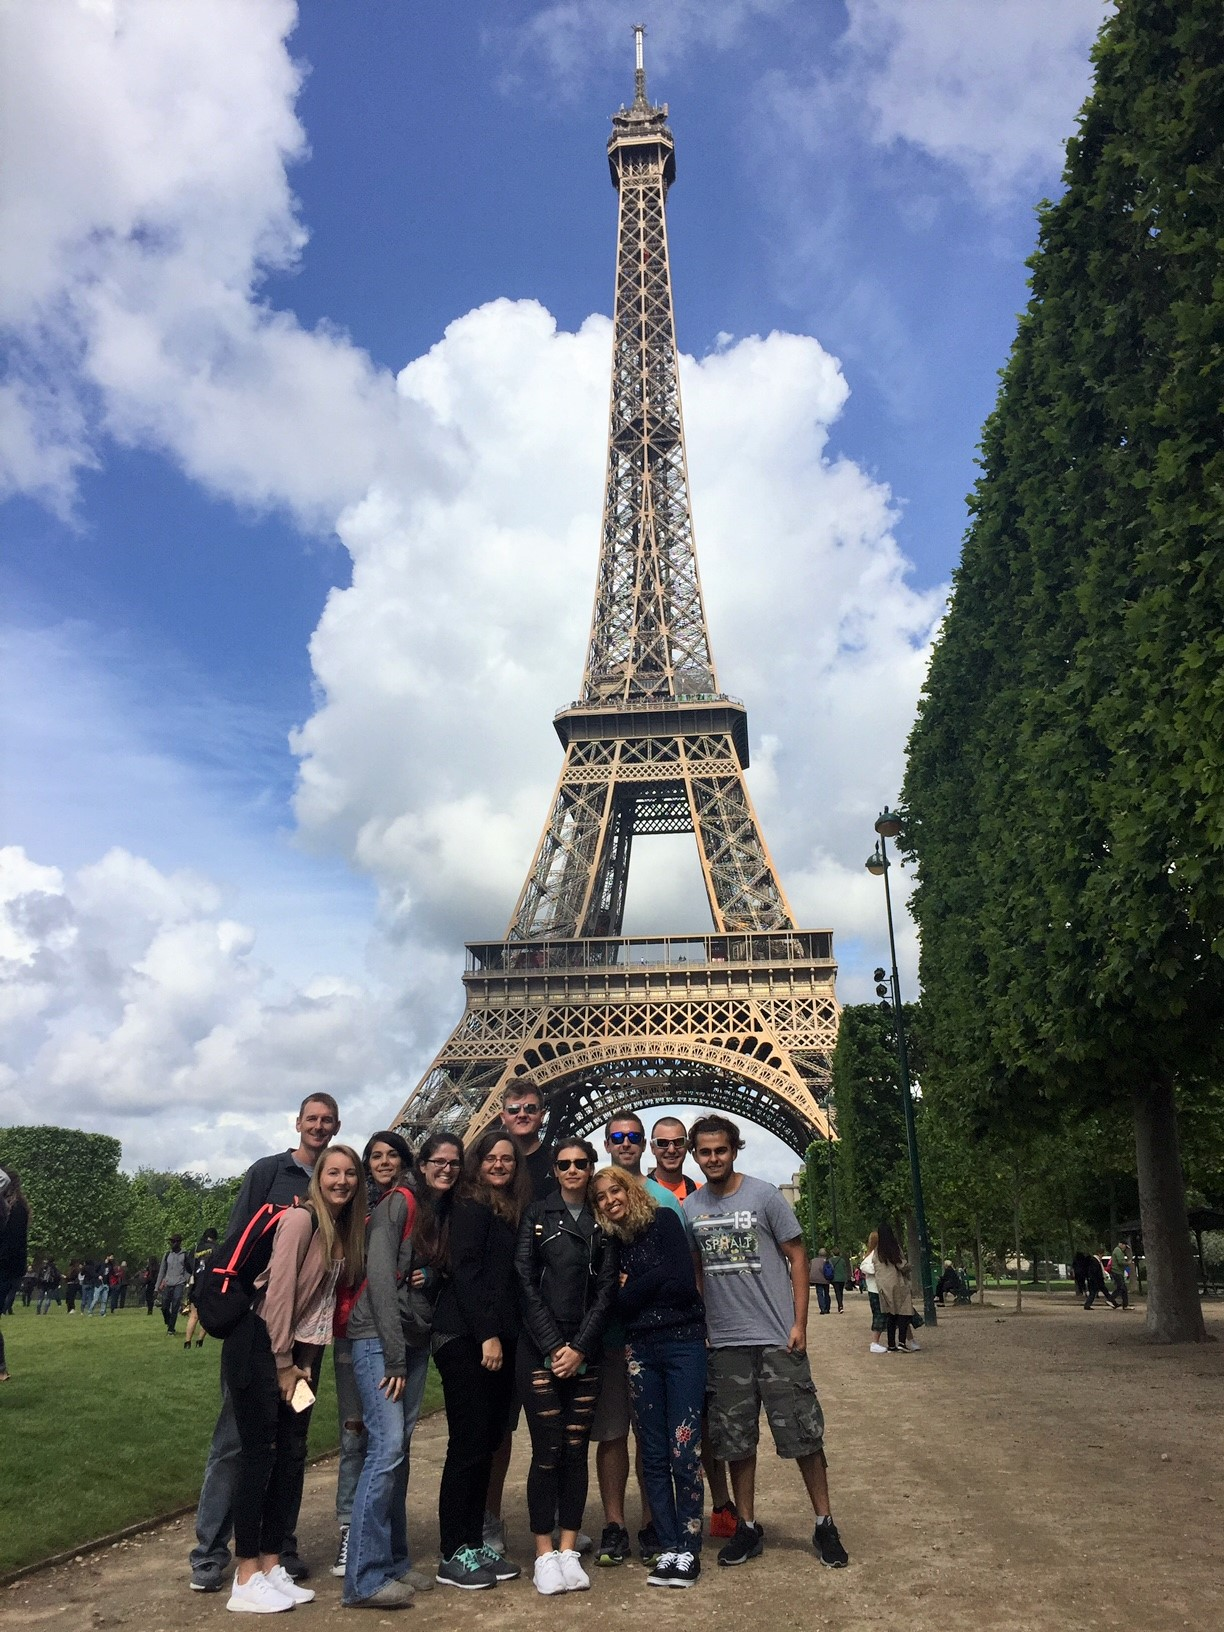 Travelers include SCF students Steven Berhalter; Tyler Clem; Tiffany Coleman; Christopher Kennedy; Victoria Kennedy; Luis Pastor; Milena Sedlar; Rachel Soldado; and SCF faculty members included Michael Rogers, Associate Professor of history and politics and Kristen Zaborski, Assistant Professor of Economics.